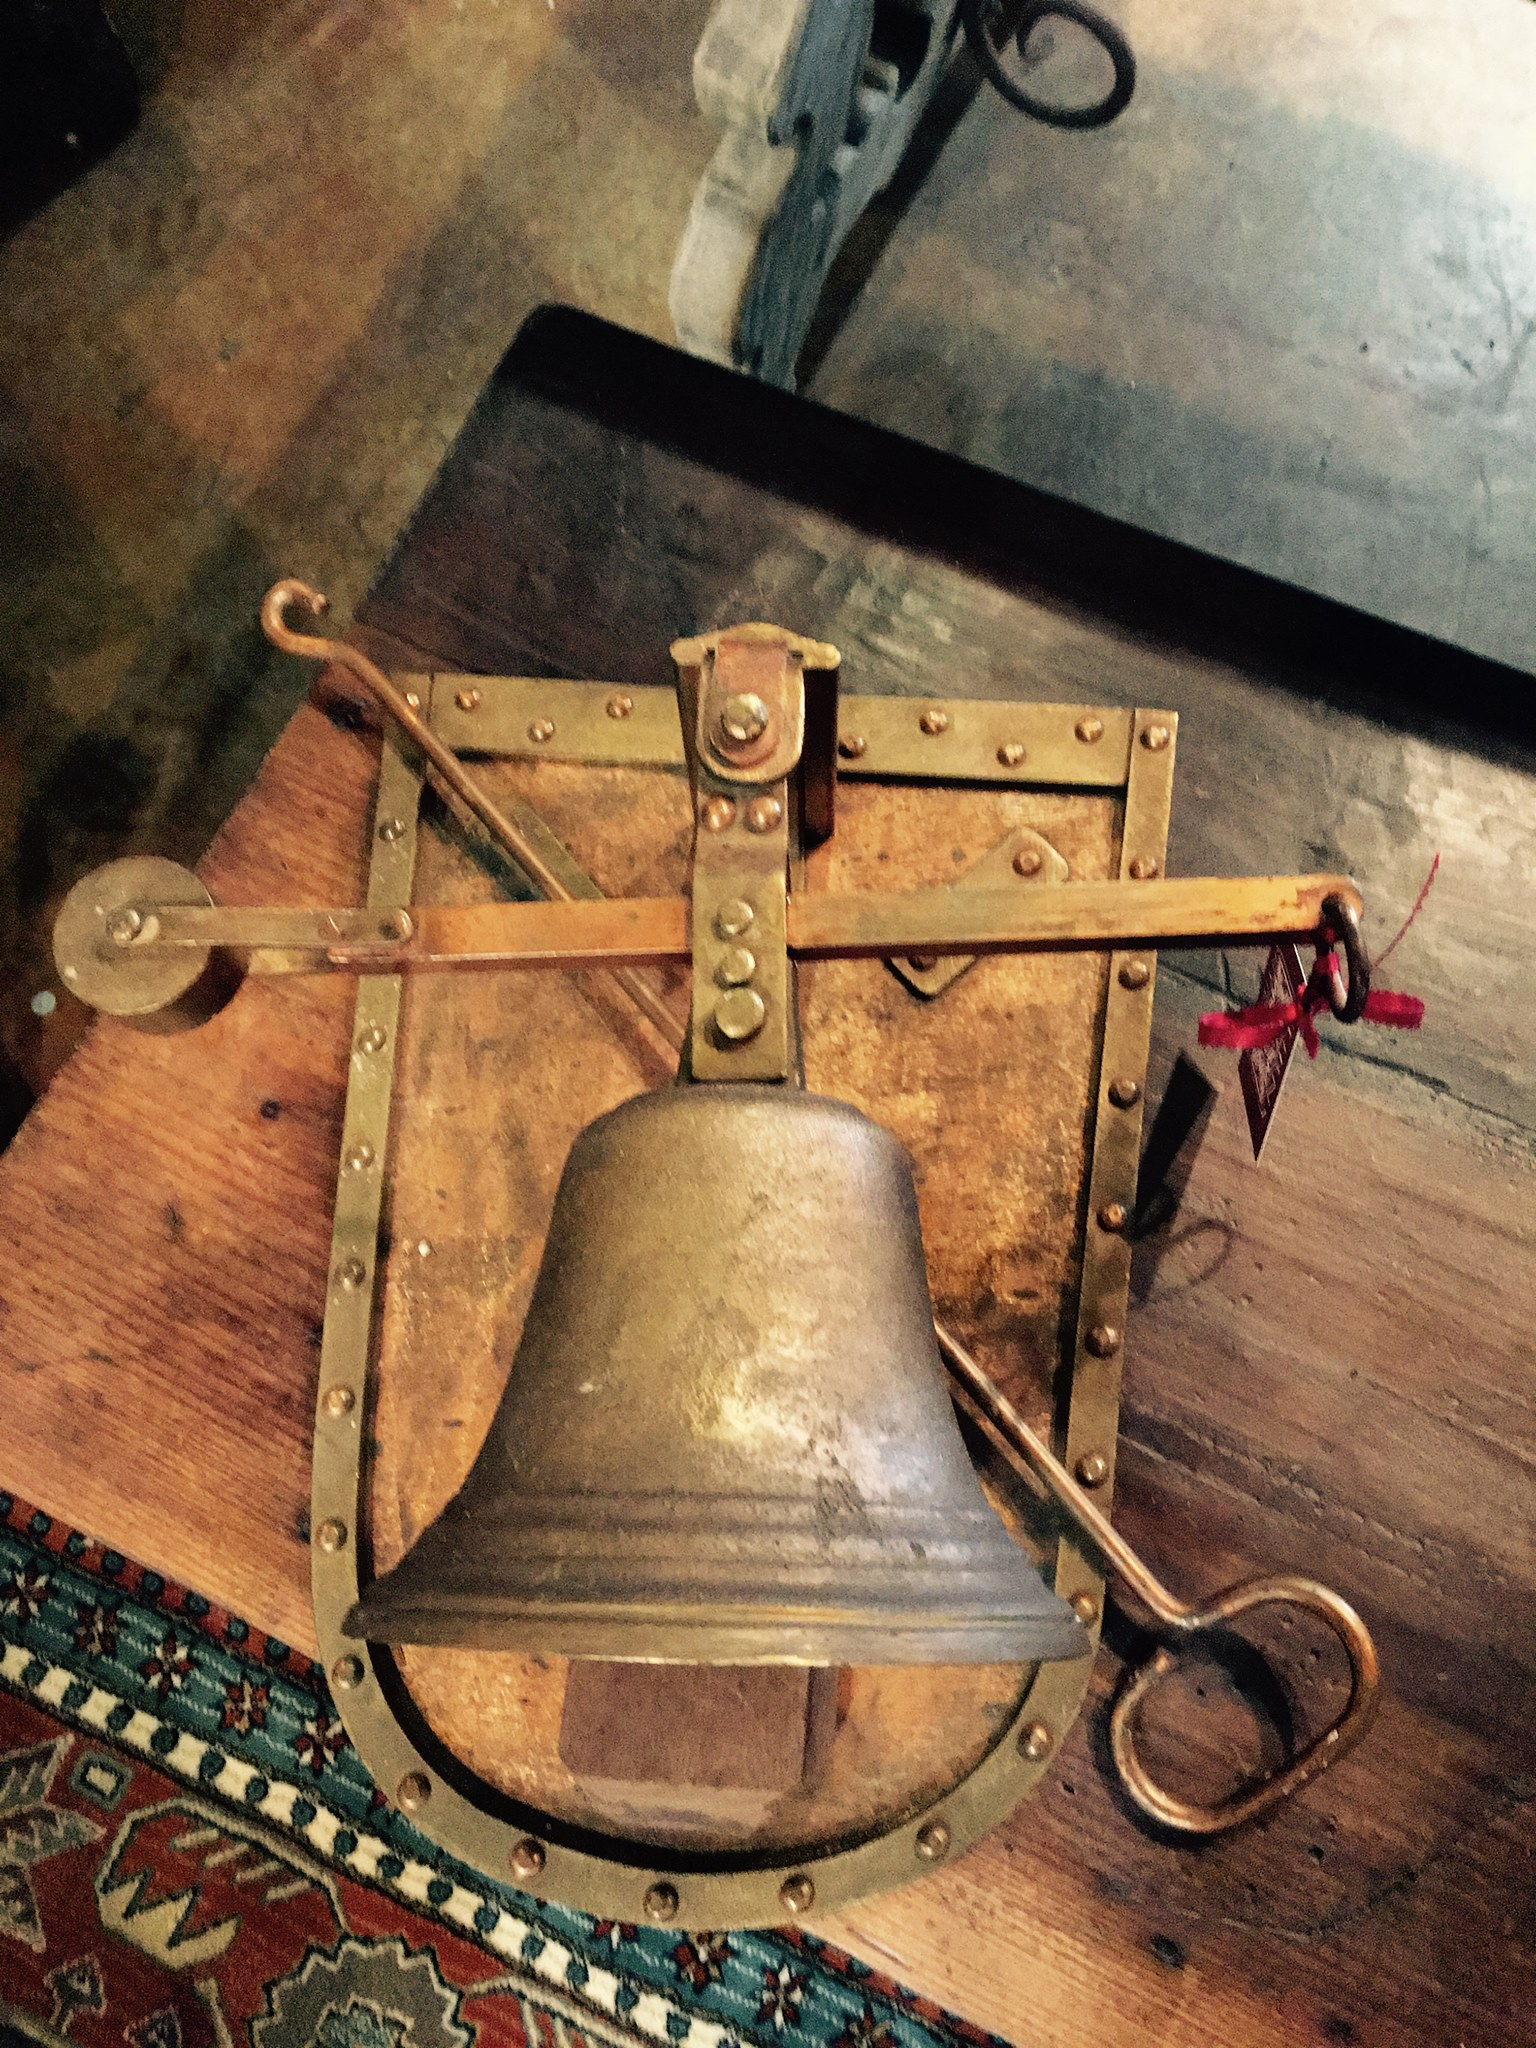 Beautiful Antique, Circa 1880 solid brass and Cooper bell. Truly a unique, one of a kind find for that special loved one in your life! Come shop Burns Antik Haus for all your holiday needs!!! 2195 Calder Ave. Beaumont, TX 77701, 409.835.3080.